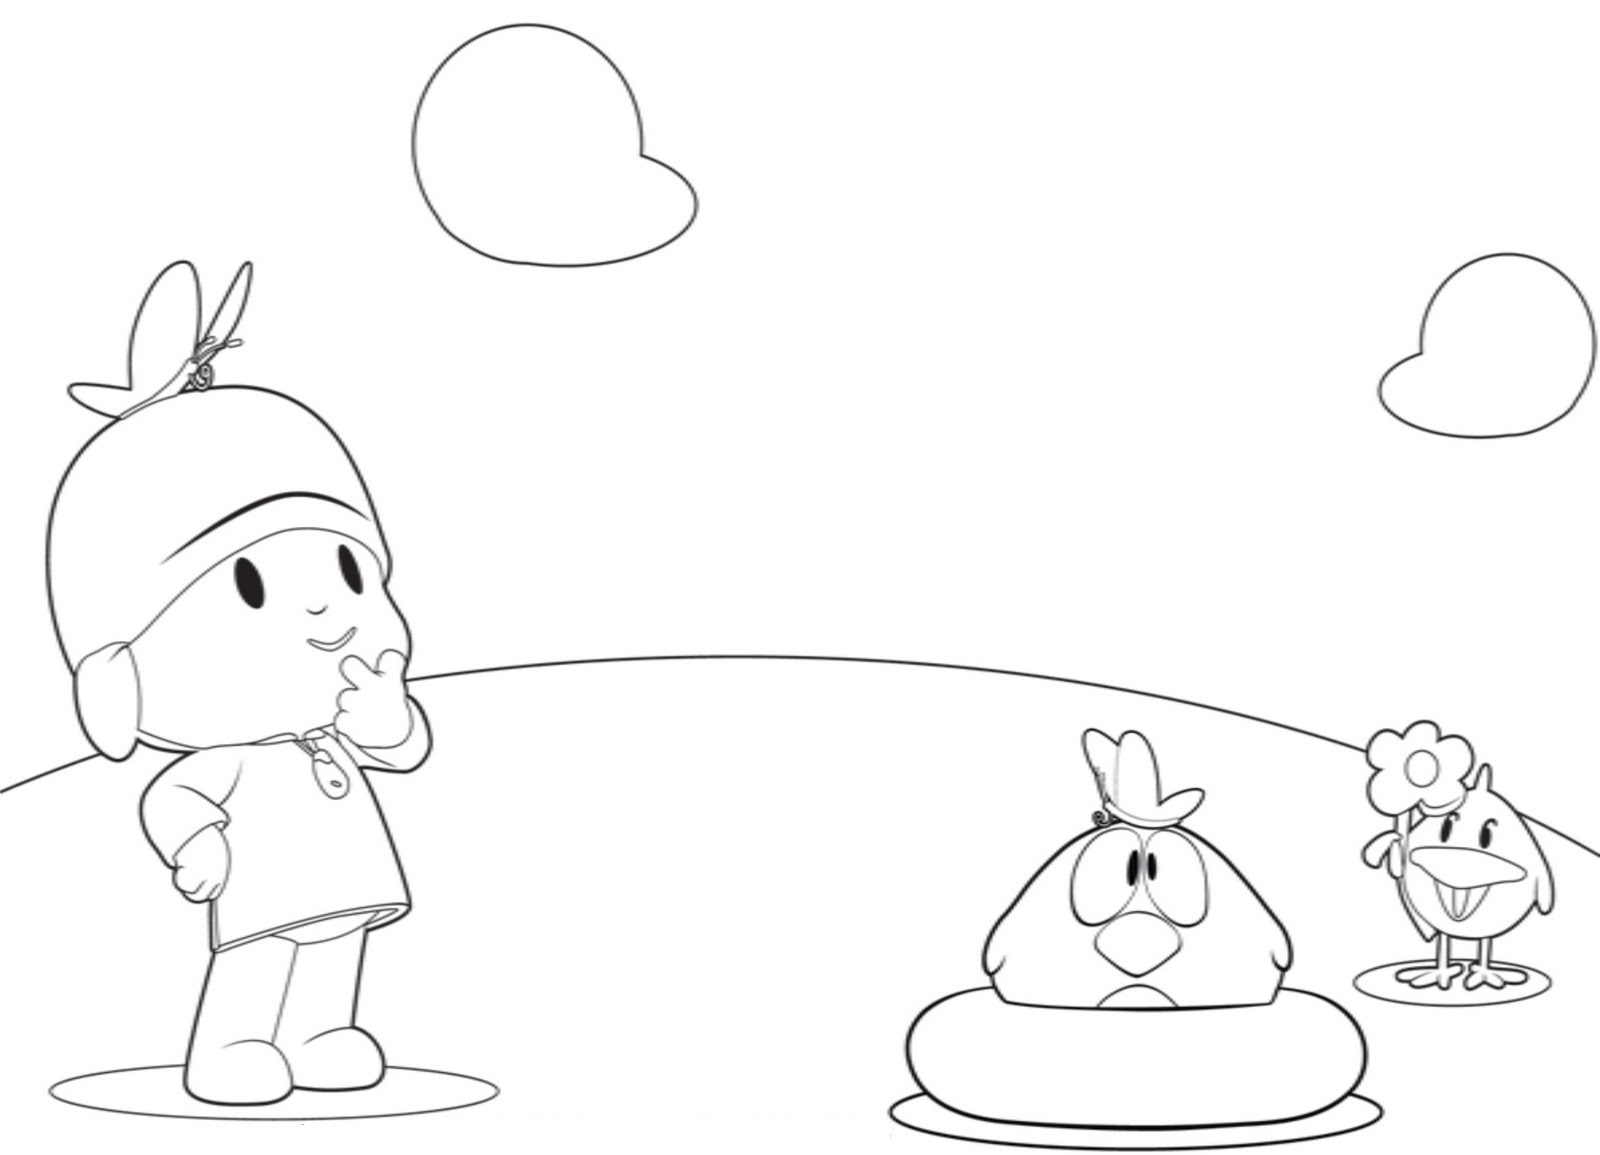 pocoyo coloring pages pictures - Pocoyo Friends Coloring Pages